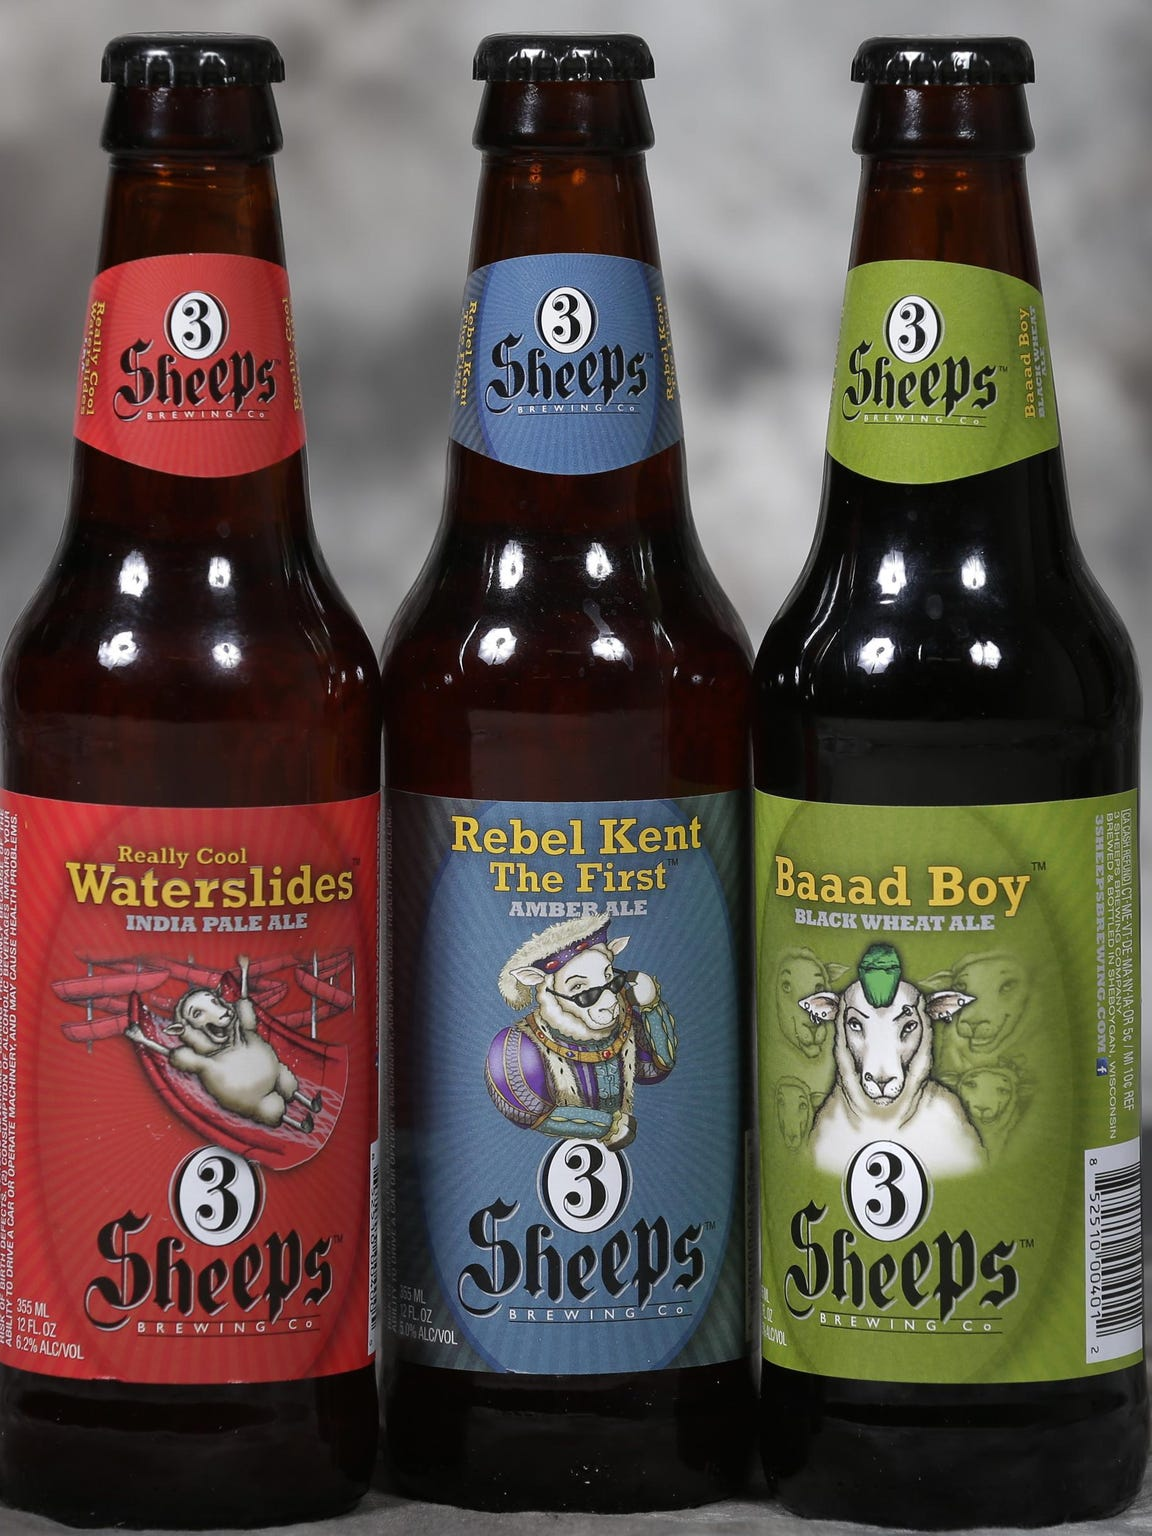 Sheboygan brewery 3 Sheeps Brewing will have their